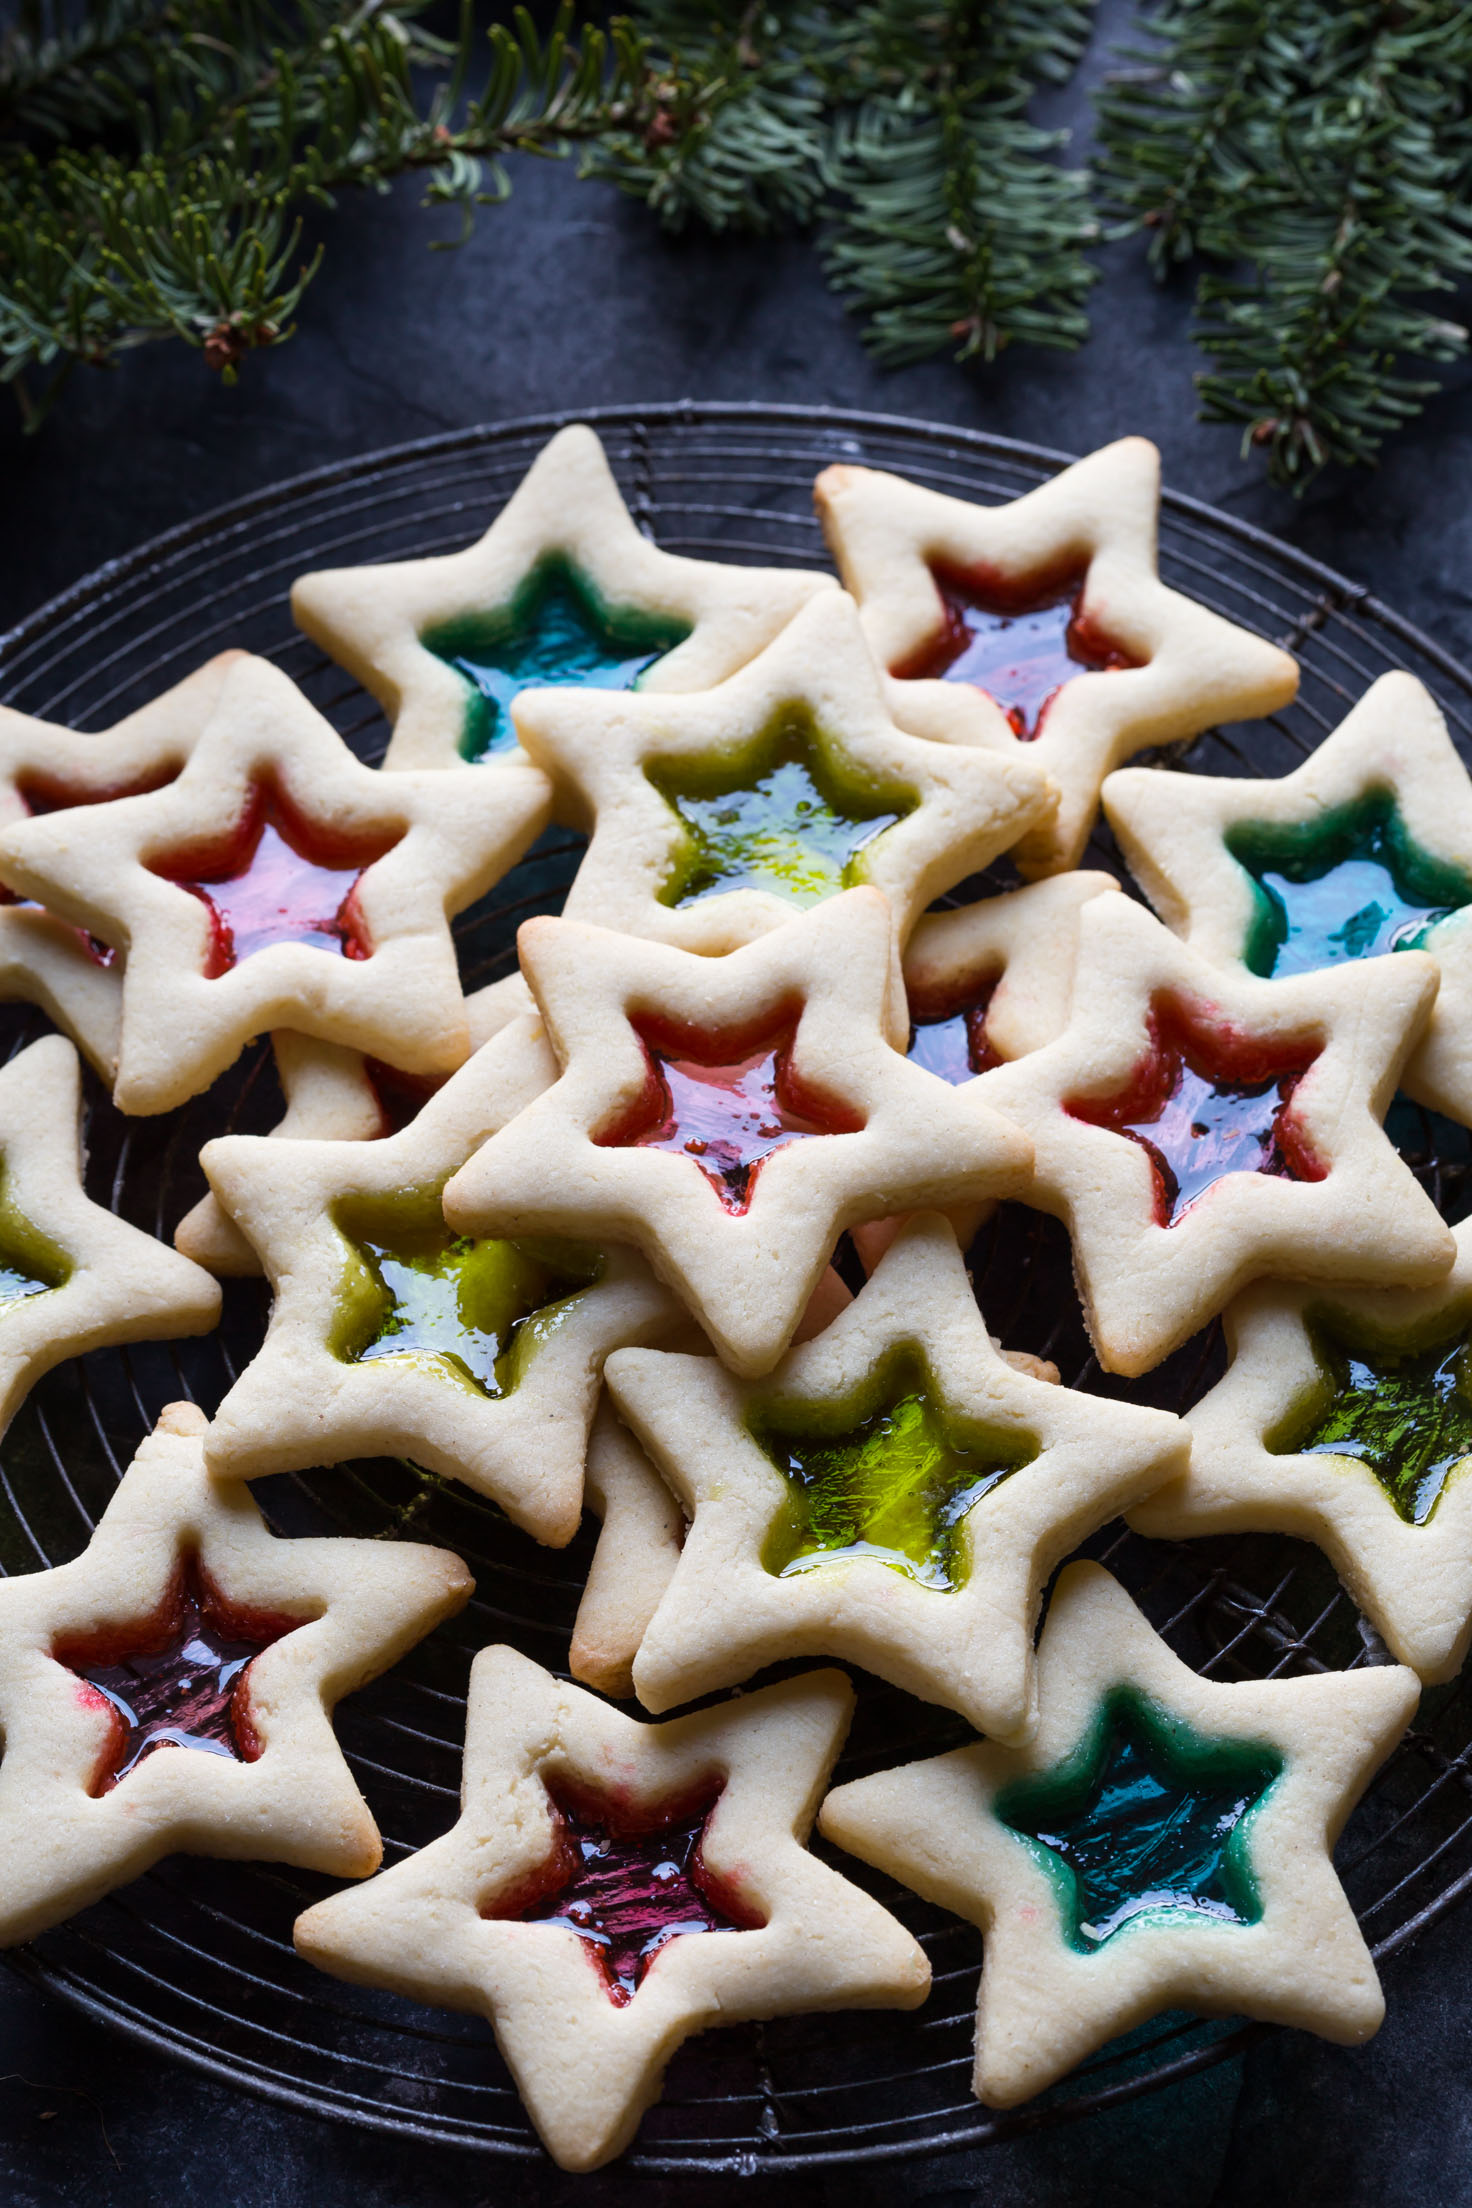 10 Cute Creative Christmas Cookies - Gluten Free Stained Glass Cookies | http://www.roseclearfield.com